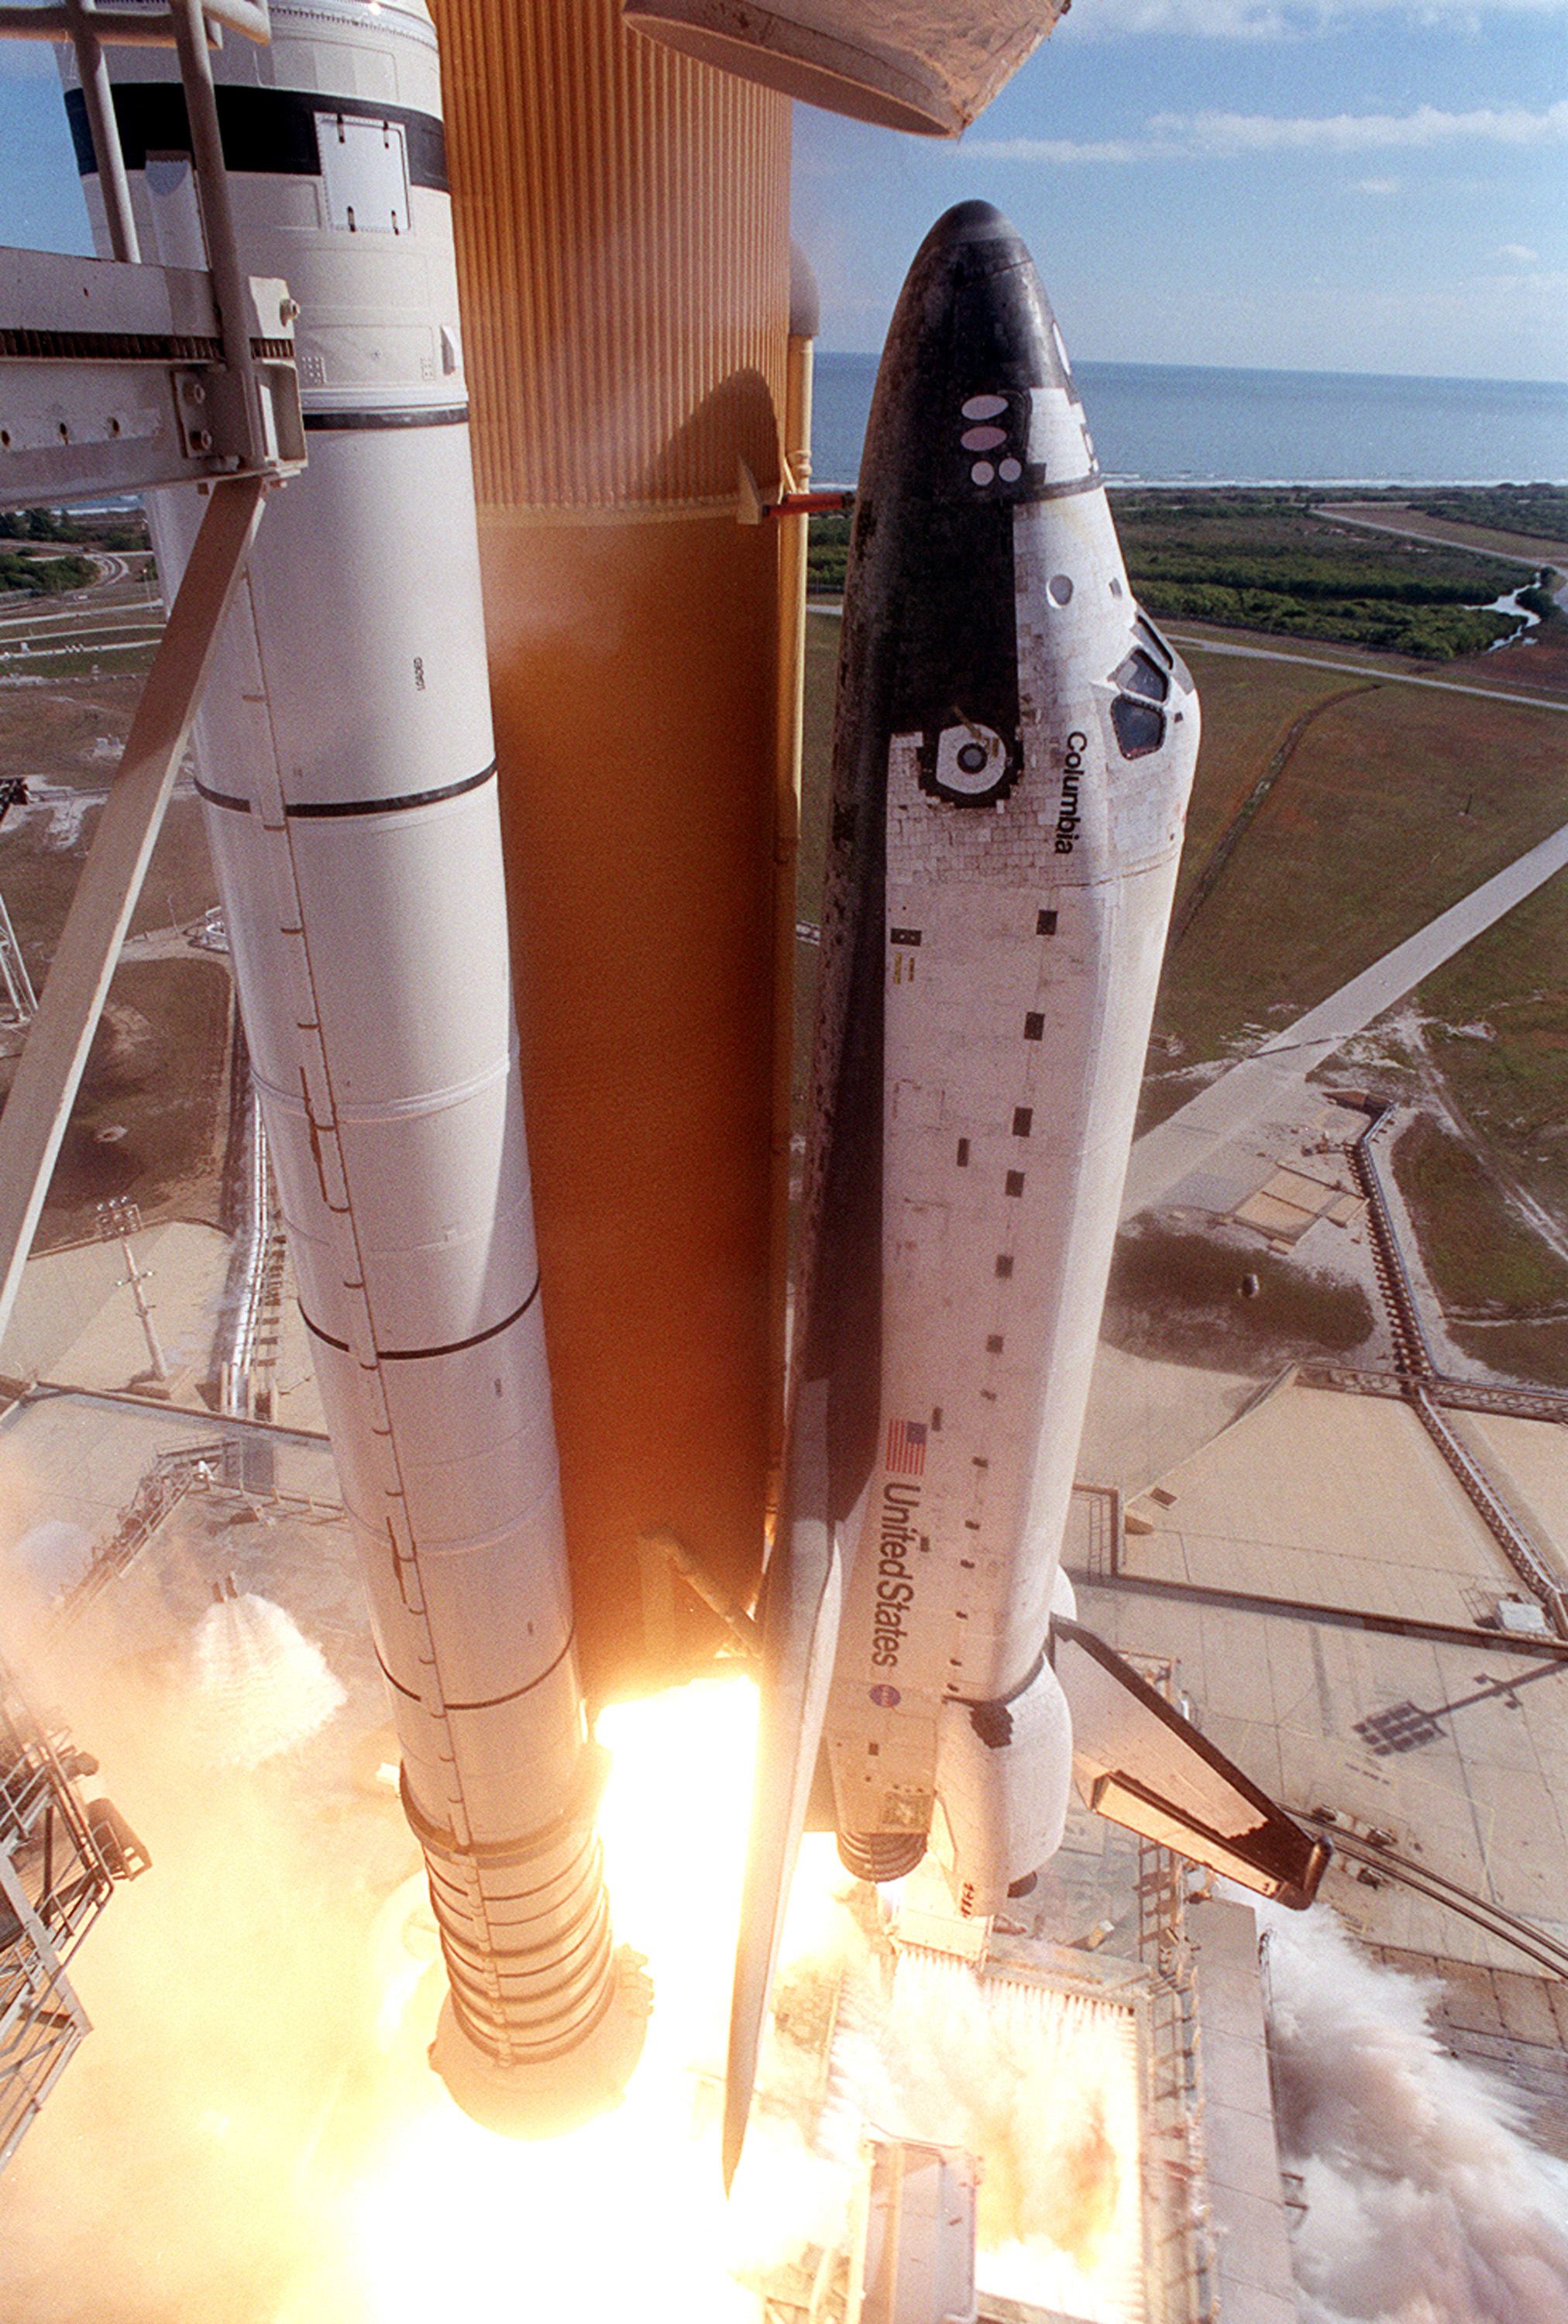 space shuttle columbia disaster start date - photo #3